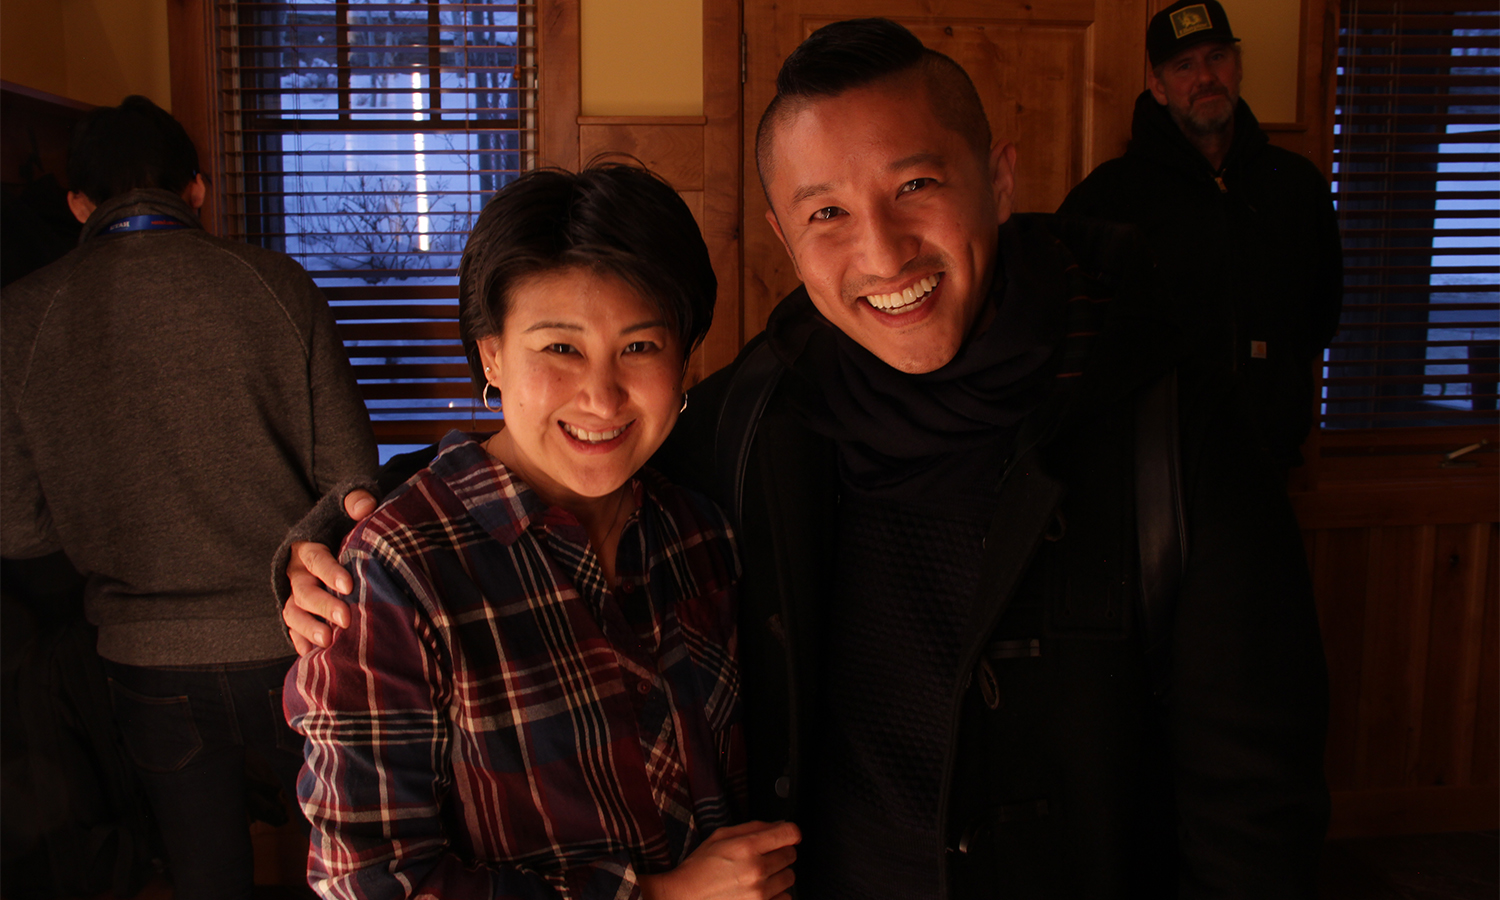 CAPE's Michelle Sugihara bids a fond farewell to one of the many guests of a successful Asian Pacific Filmmakers Experience in Park City. (Photo: Abraham Ferrer/Visual Communications Photographic Archive)